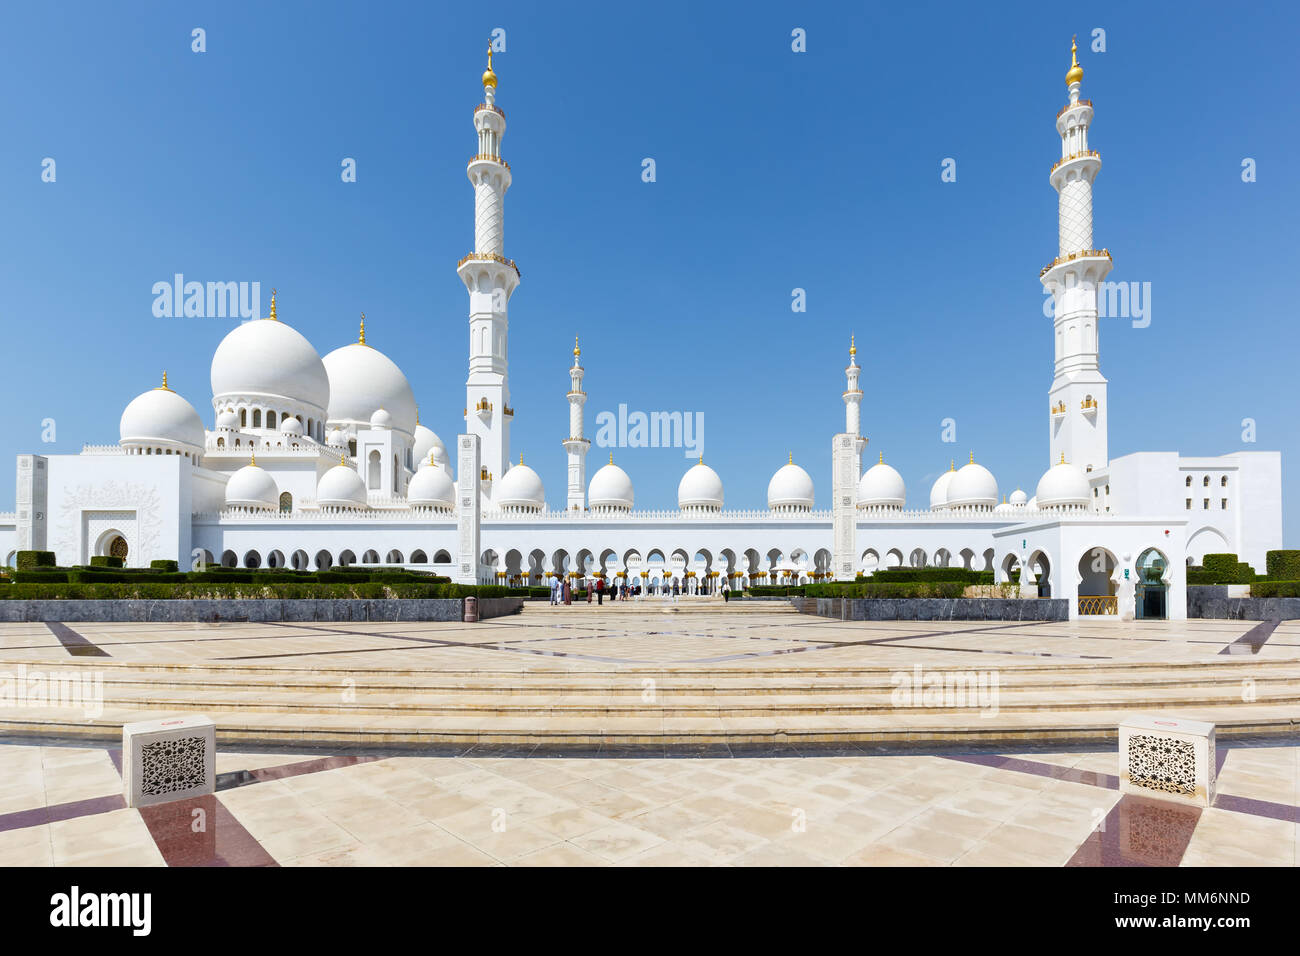 Sheikh Zayed Grand Mosque Abu Dhabi minarets United Arab Emirates UAE - Stock Image